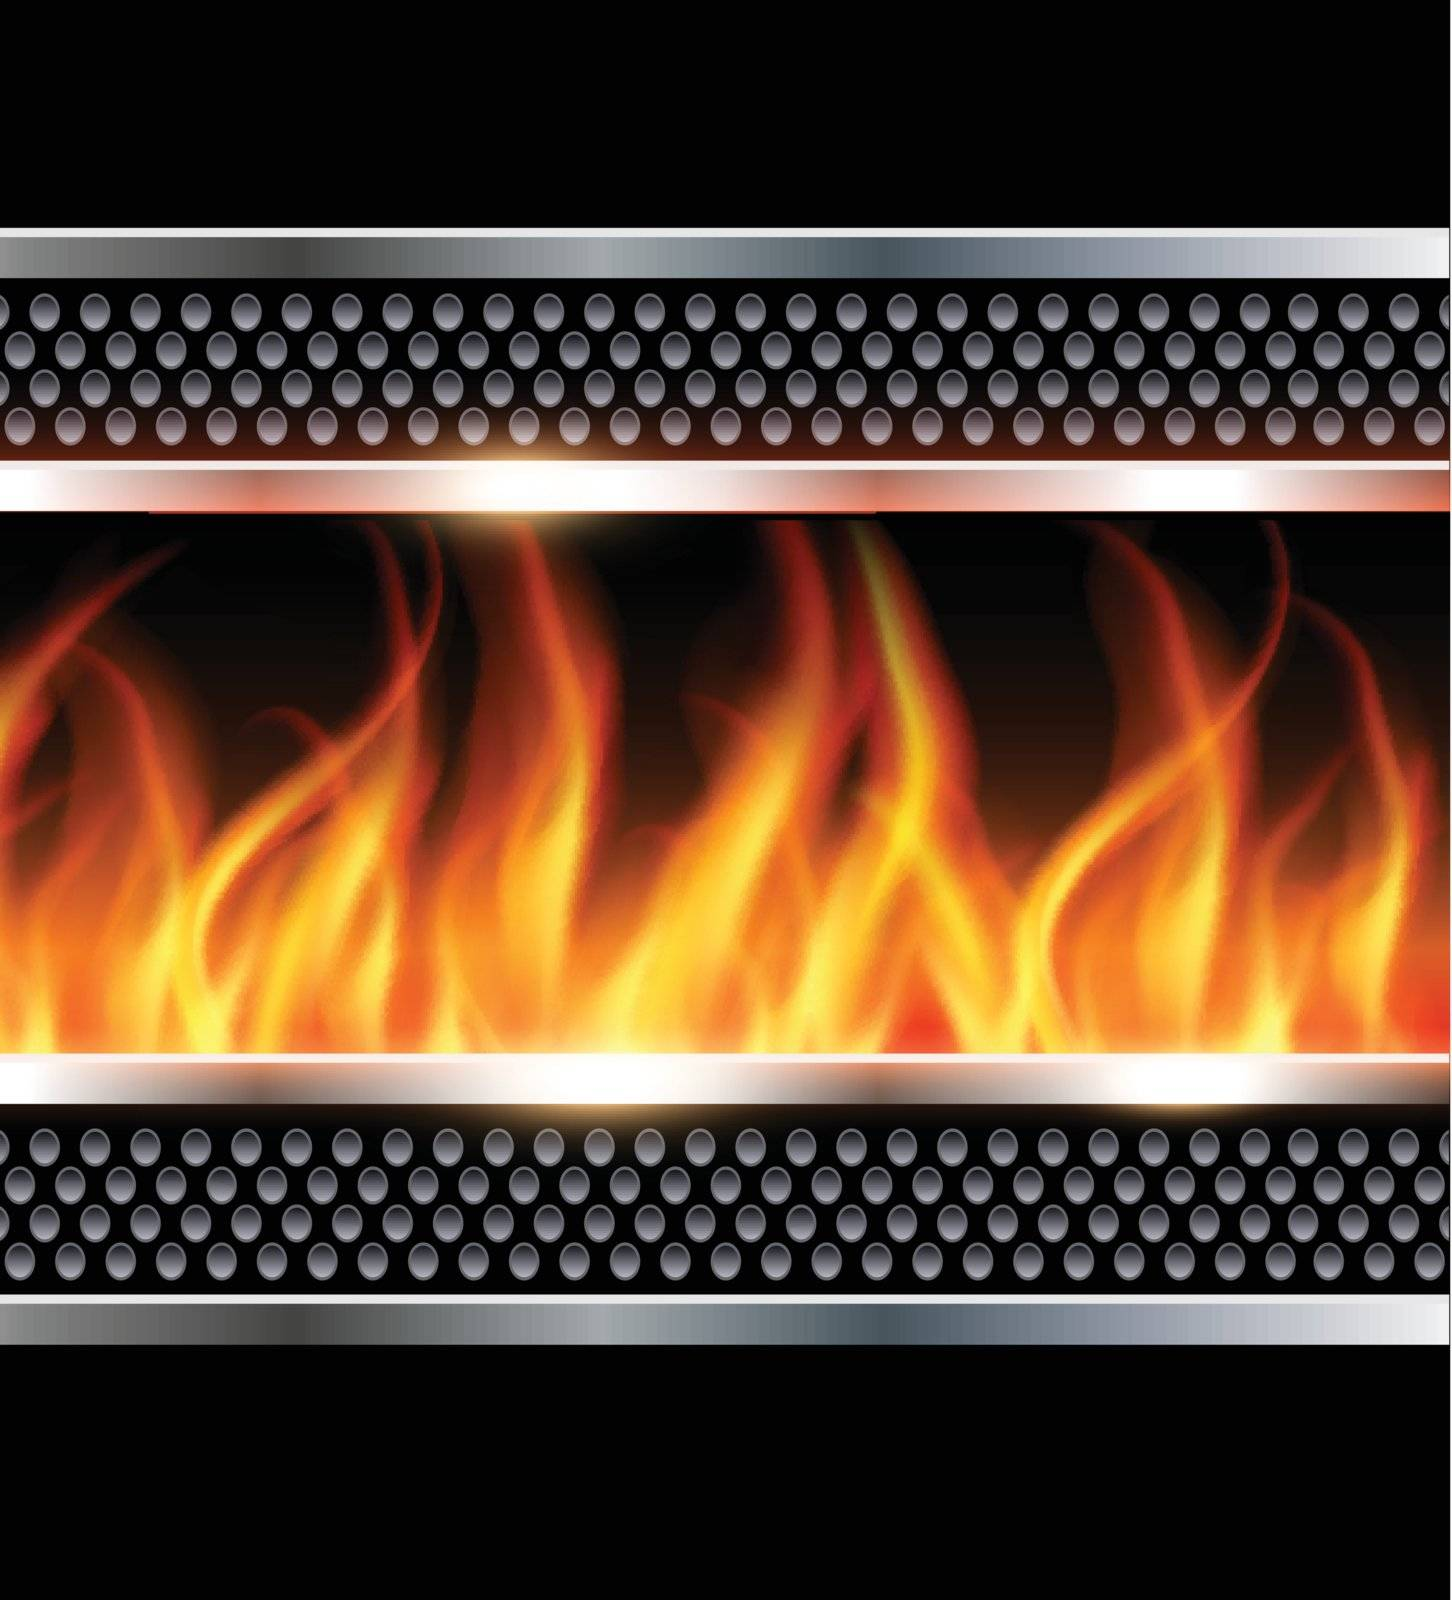 Abstract background with vector fire, firewall concept.